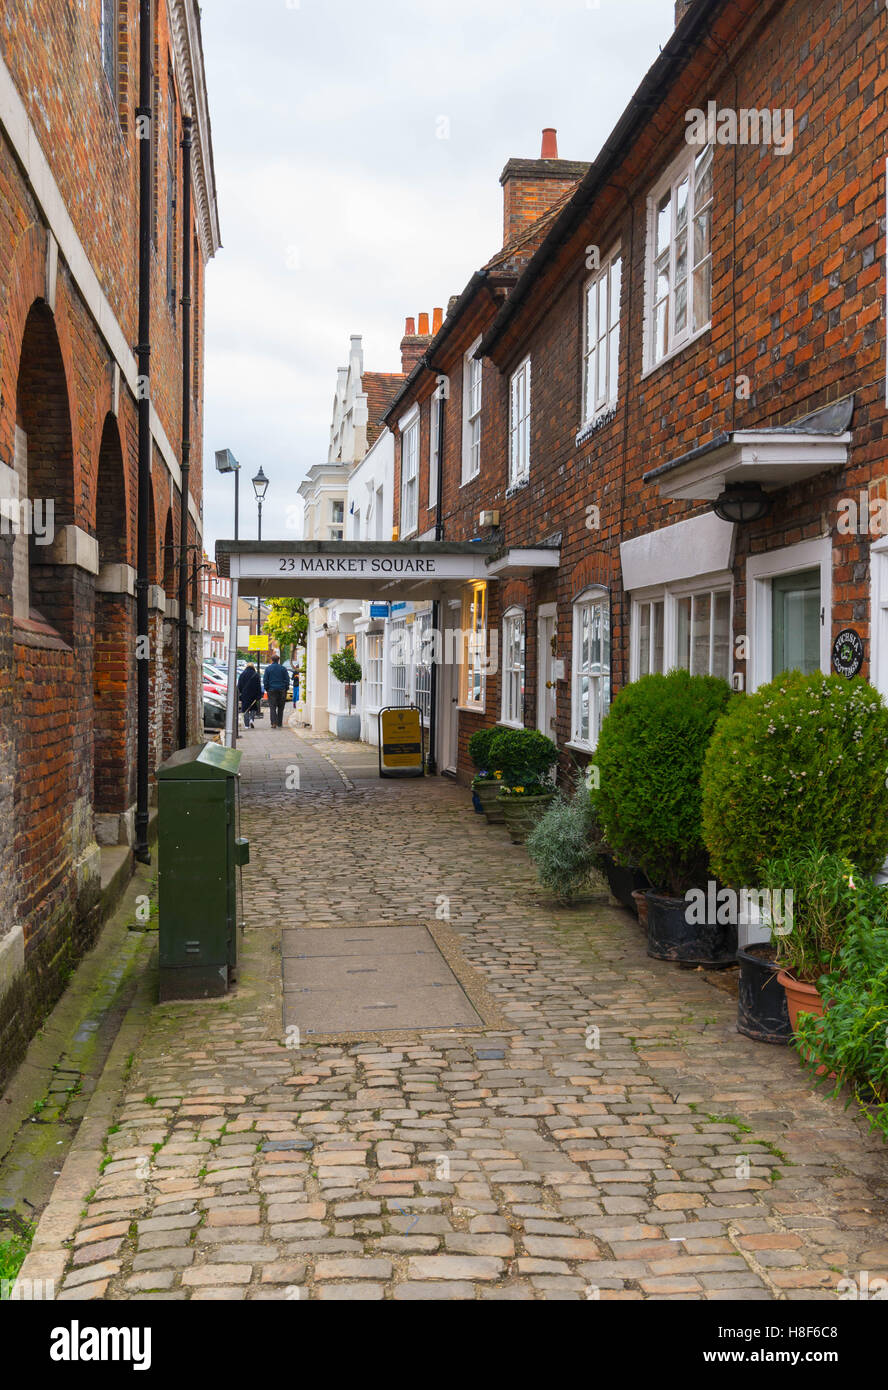 View of the High Street in Old Amersham, Buckinghamshire, England. November 2016. Stock Photo